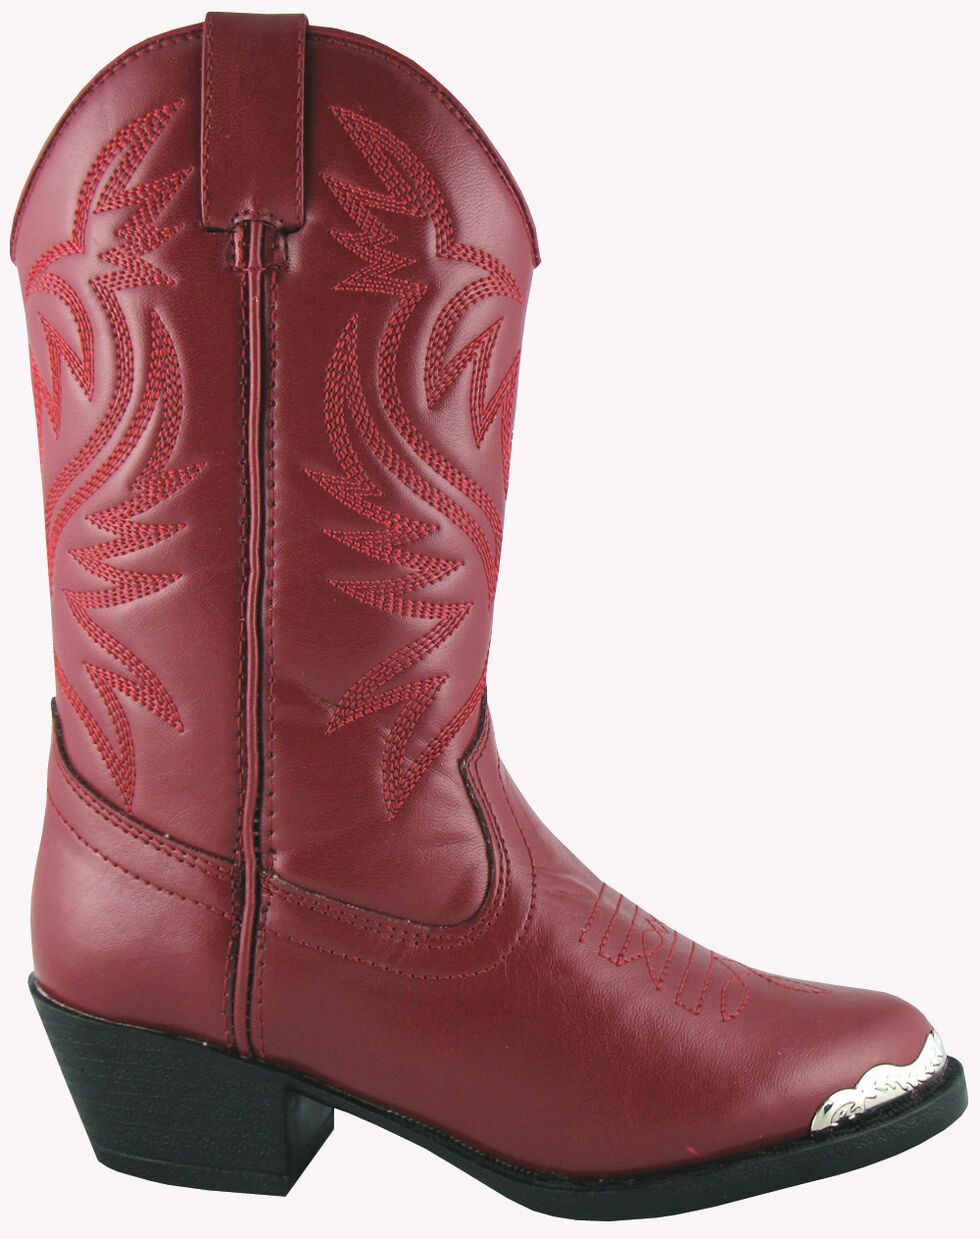 Smoky Mountain Youth Girls' Mesquite Western Boots - Round Toe, Red, hi-res